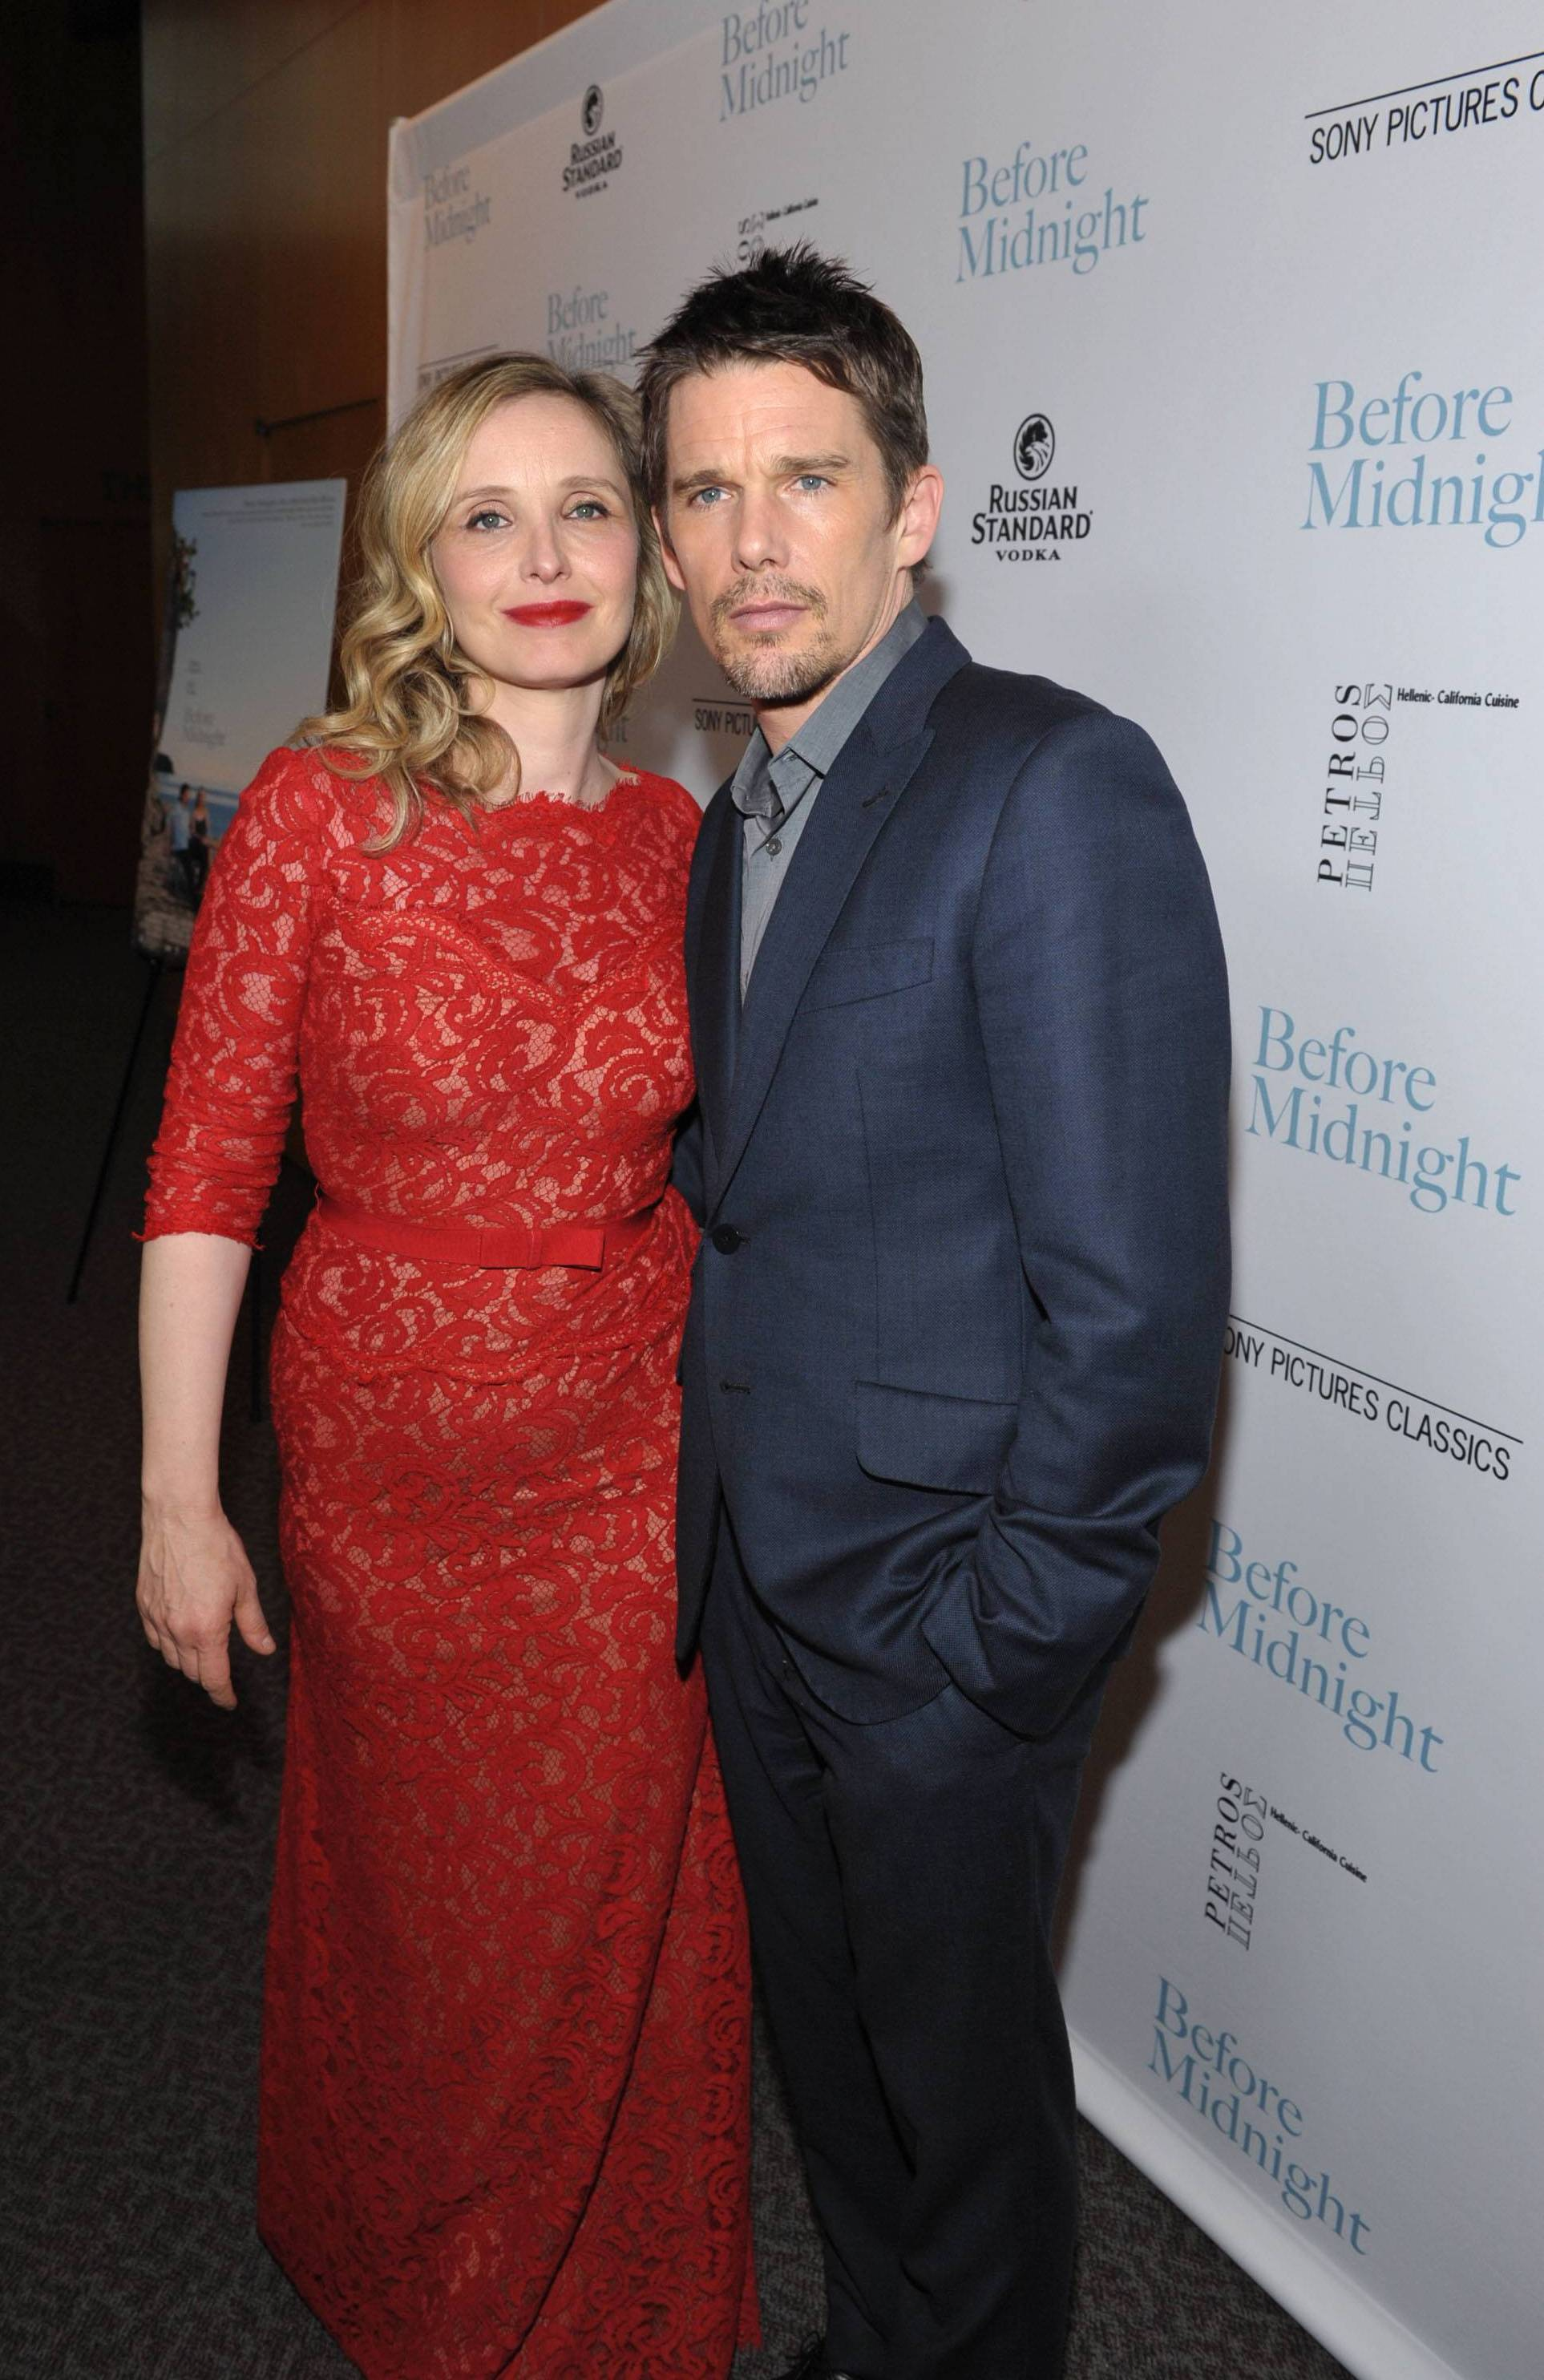 "Julie Delpy and Ethan Hawke at the Sony PIctures Classics premiere of ""Before Midnight"", on Tuesday, May 21, 2013 in Los Angeles. (John Shearer/Invision for A-List Communications/AP Images)"